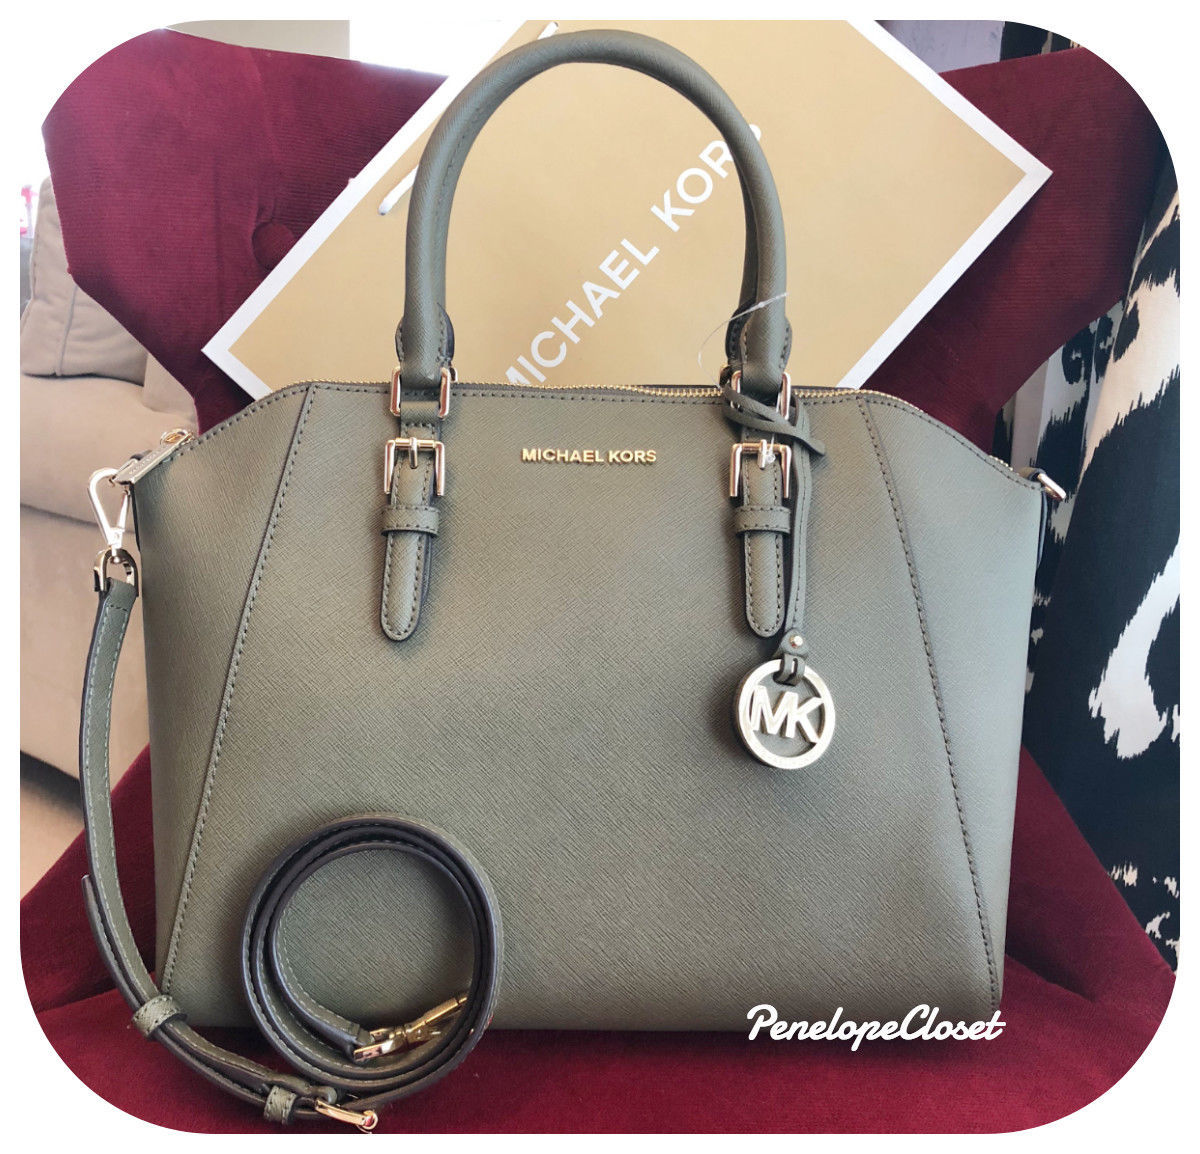 1bfb4148197d19 NWT MICHAEL KORS SAFFIANO LEATHER CIARA LARGE TOP ZIP SATCHEL BAG IN OLIVE